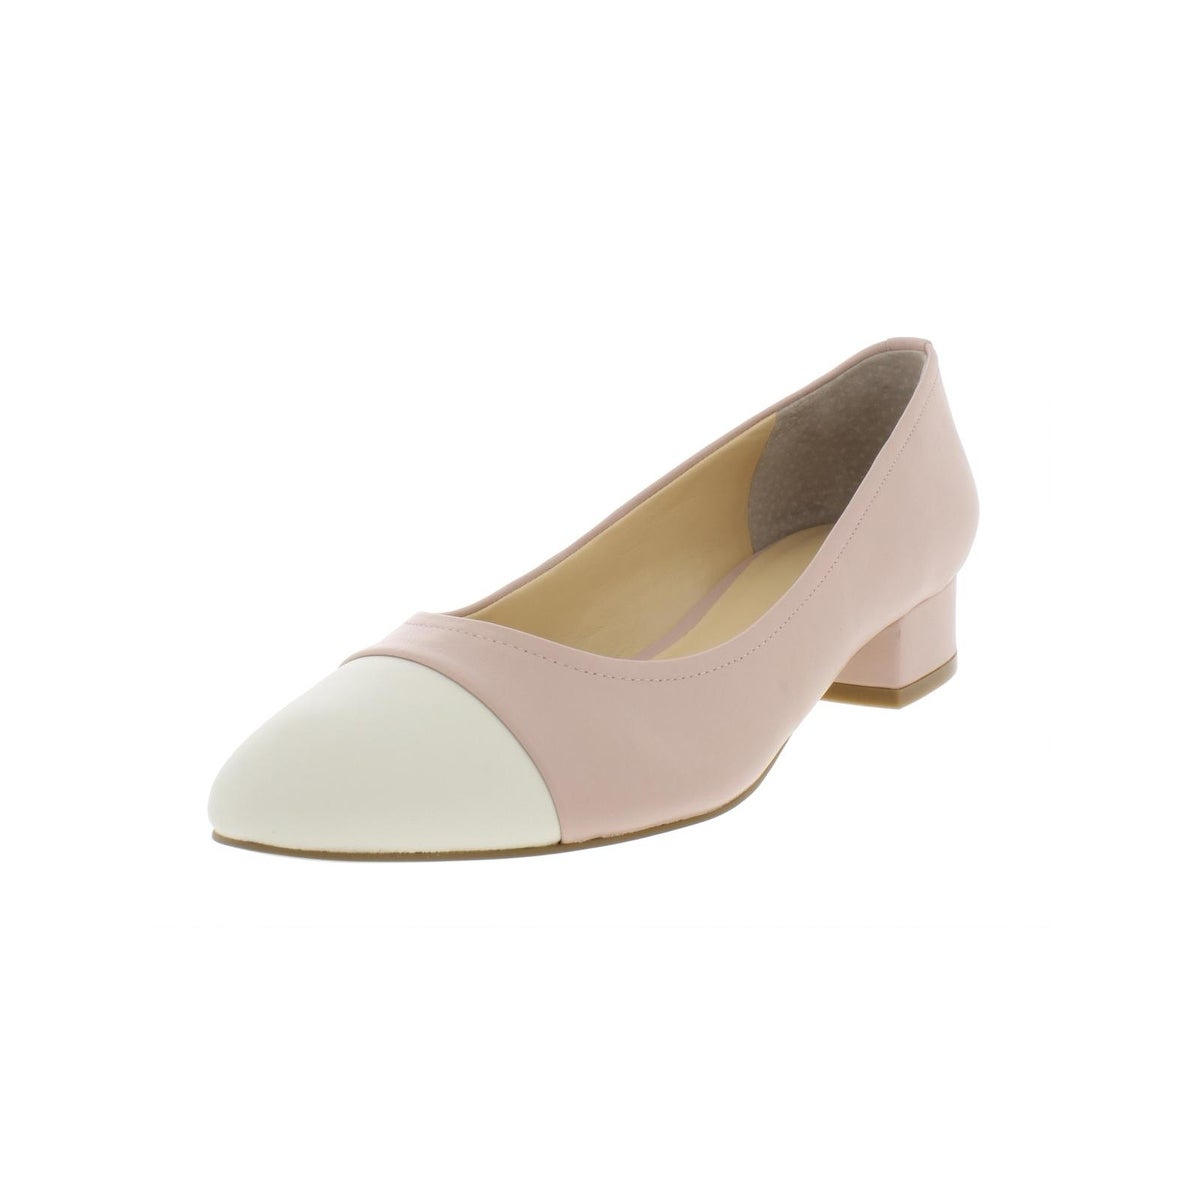 Women's Shoes | Find Great Shoes Deals Shopping at Overstock